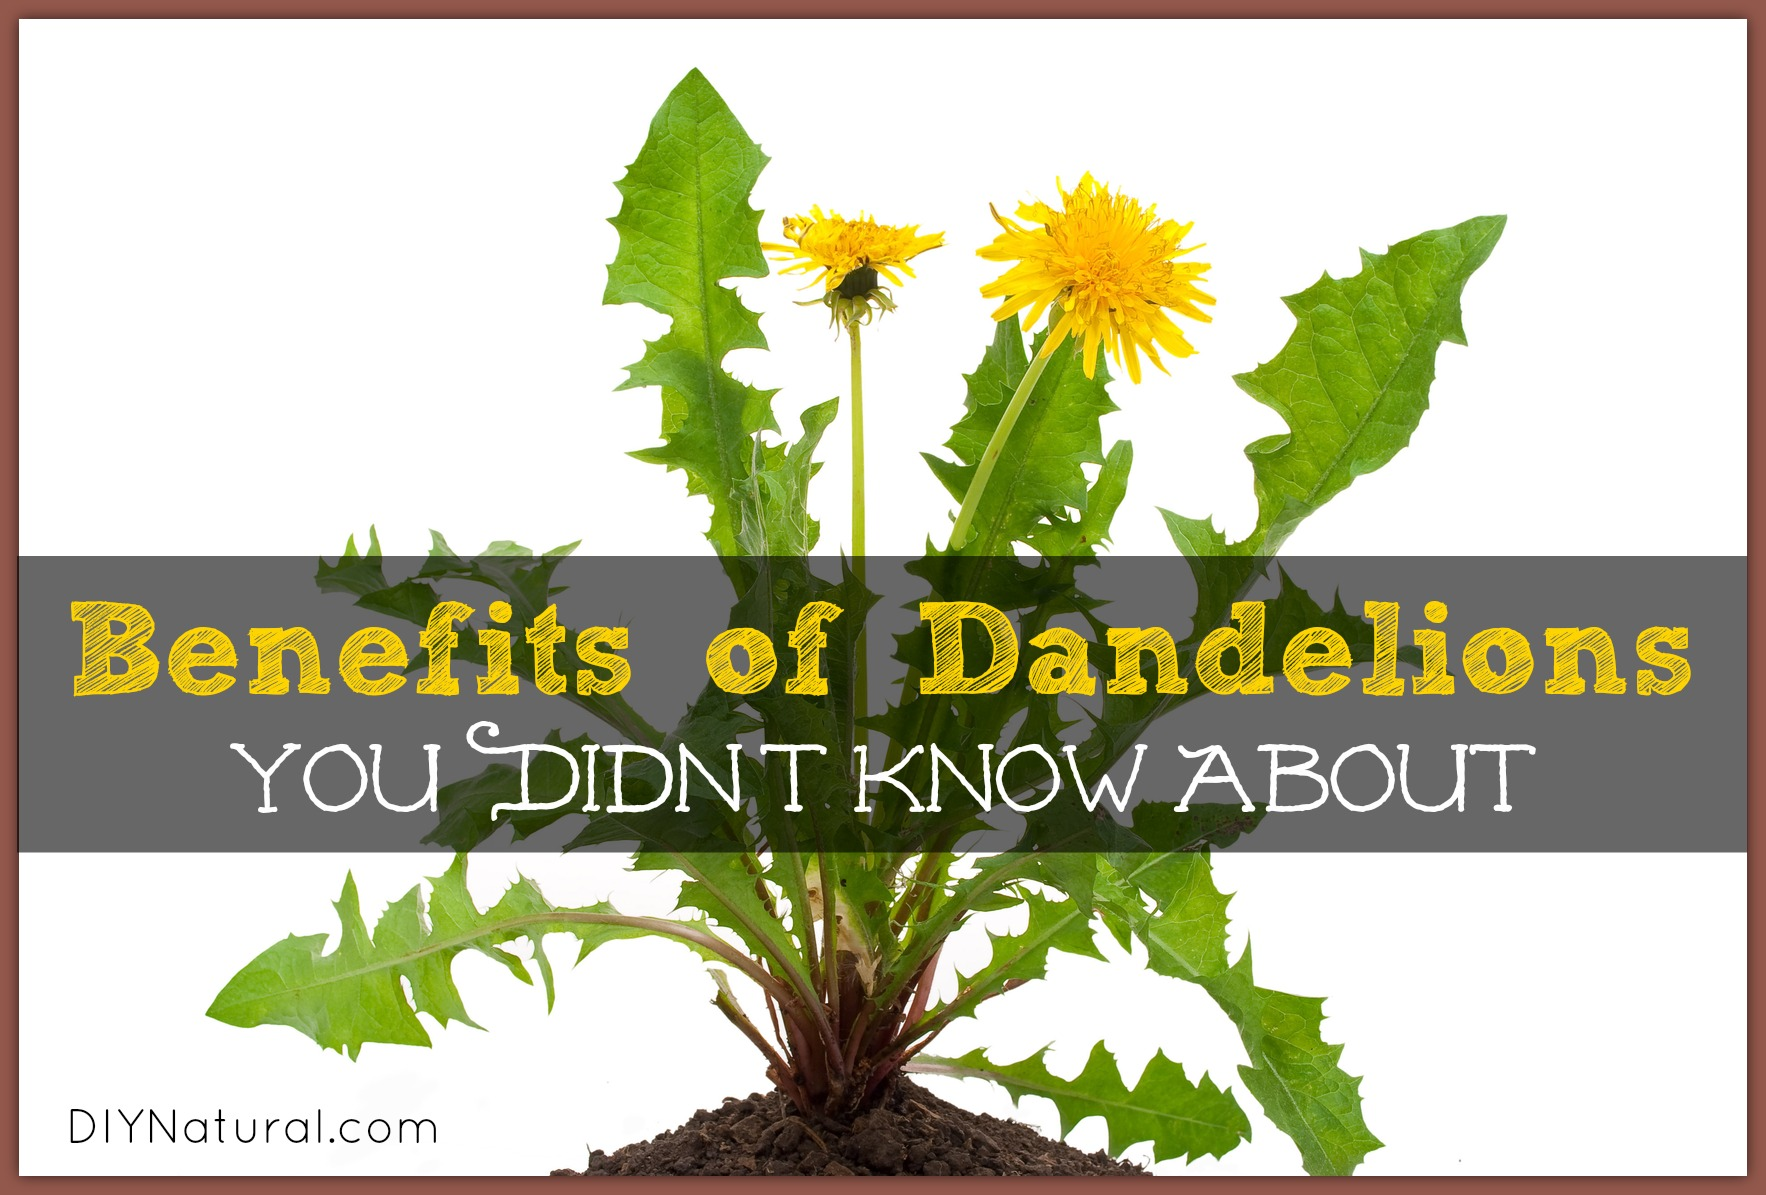 Dandelion Benefits - Greens, Roots, and Dandelion Tea